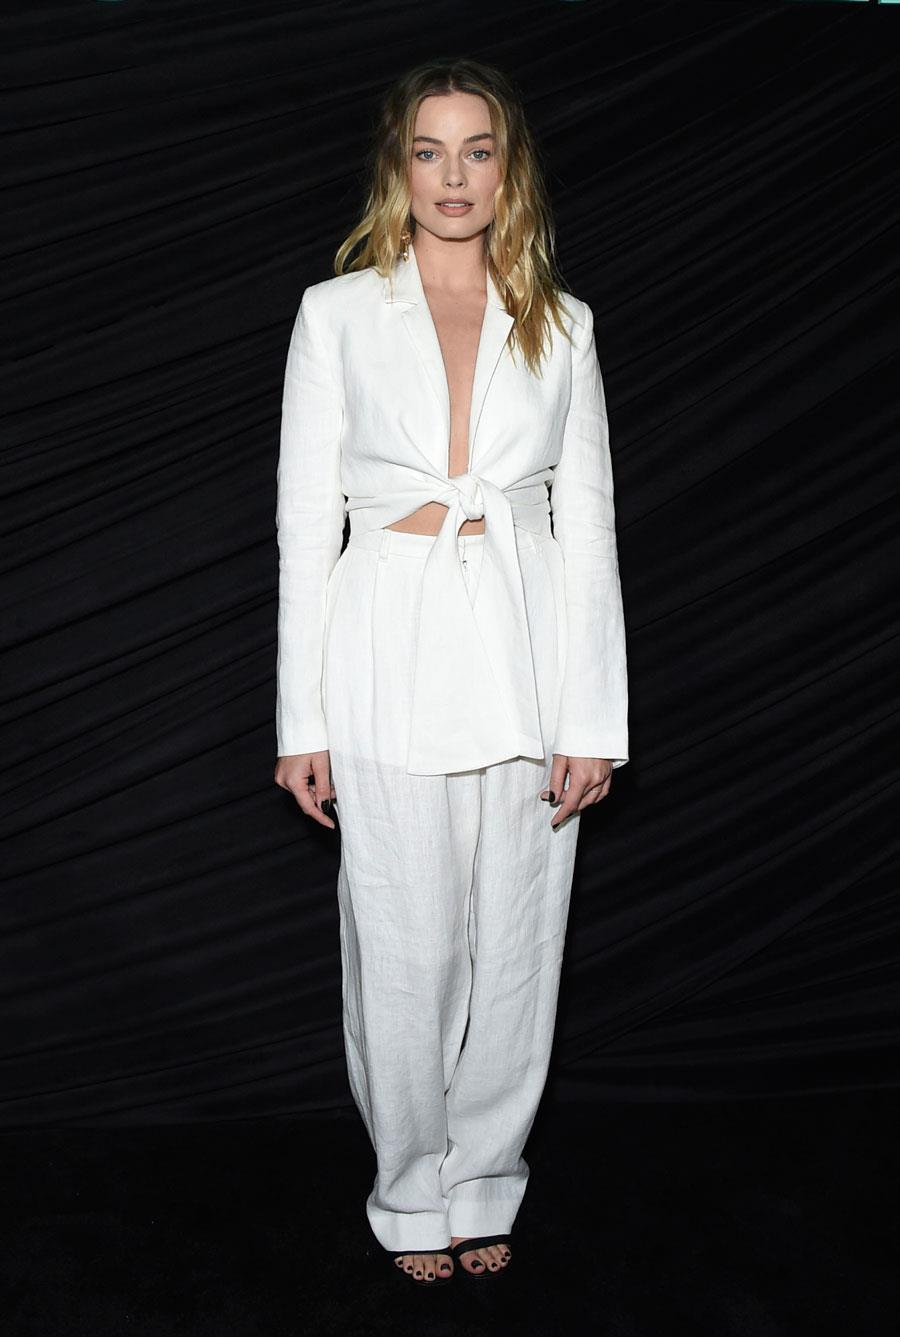 El 'look' de Margot Robbie